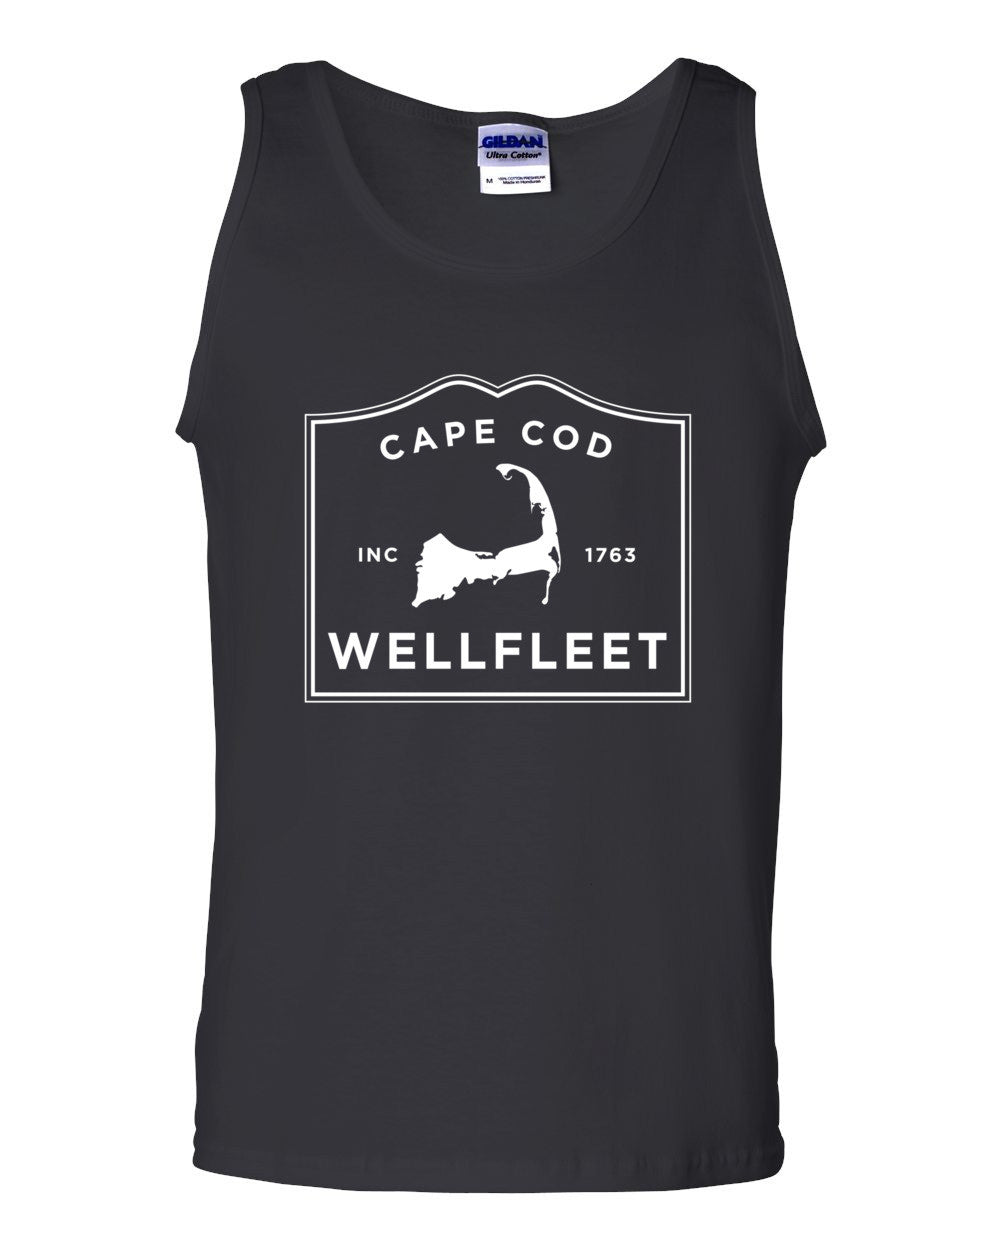 Wellfleet Cape Cod Tank Top